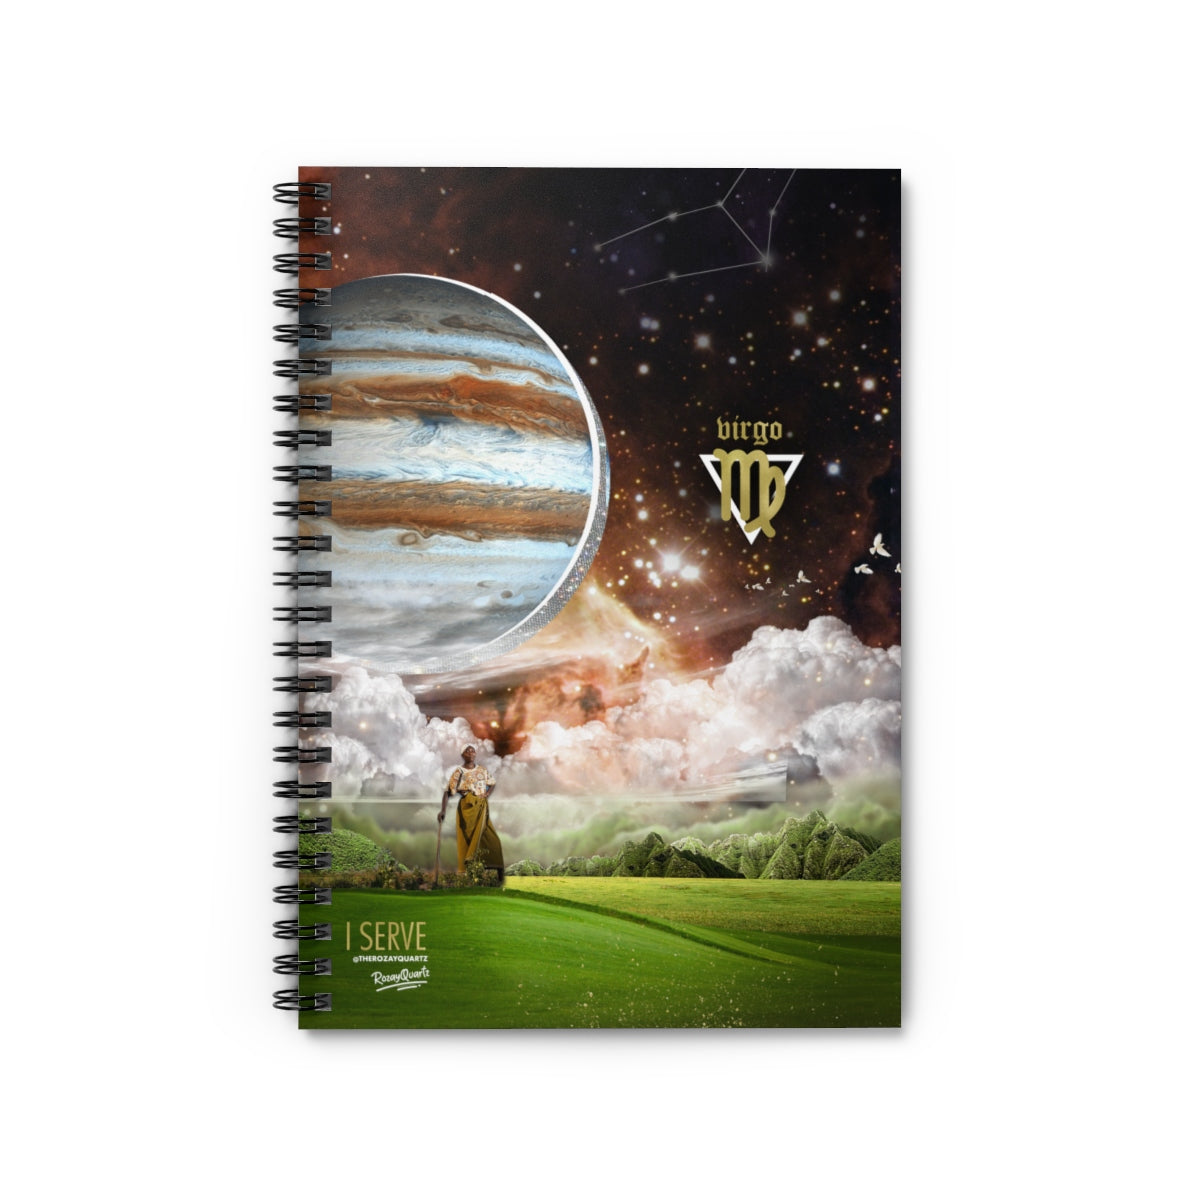 Virgo Notebook - #ChildishZodiac